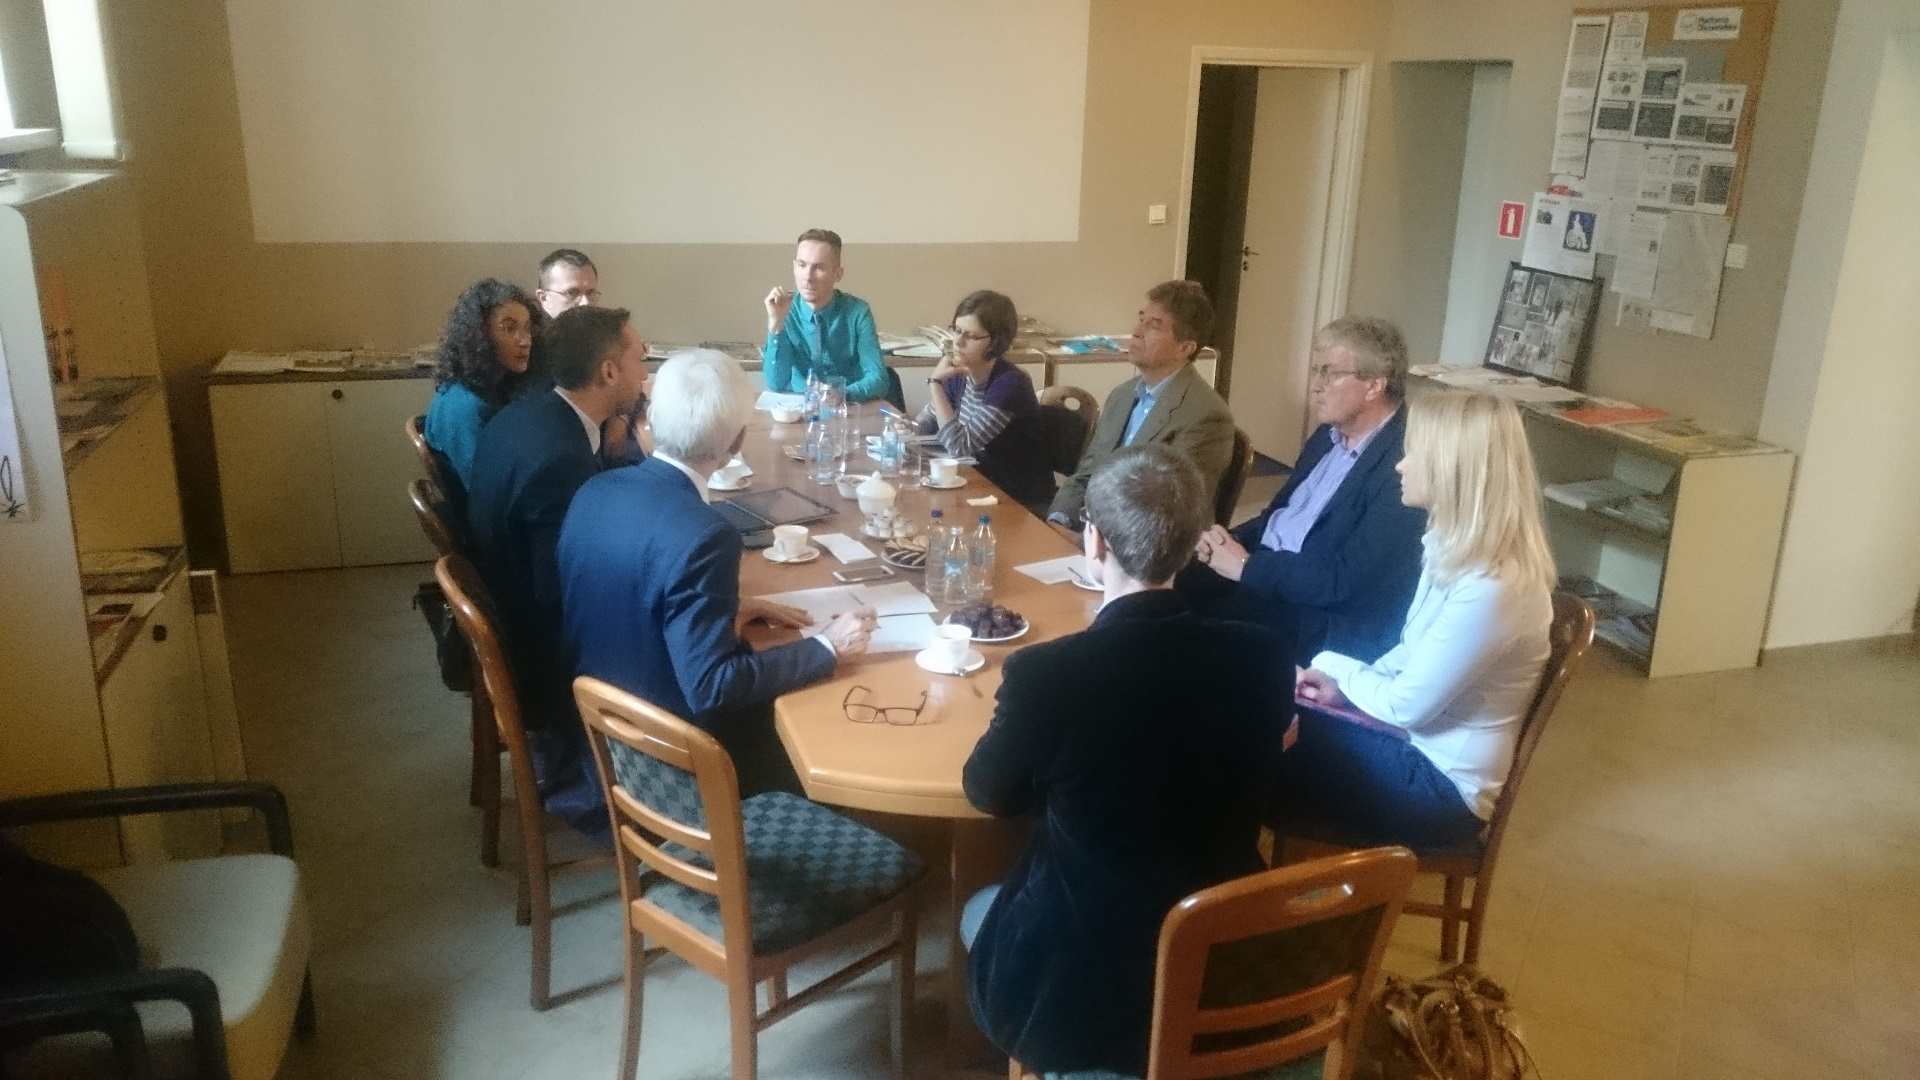 Refugee crisis – can we fix it? Discussion with Polish NGOs